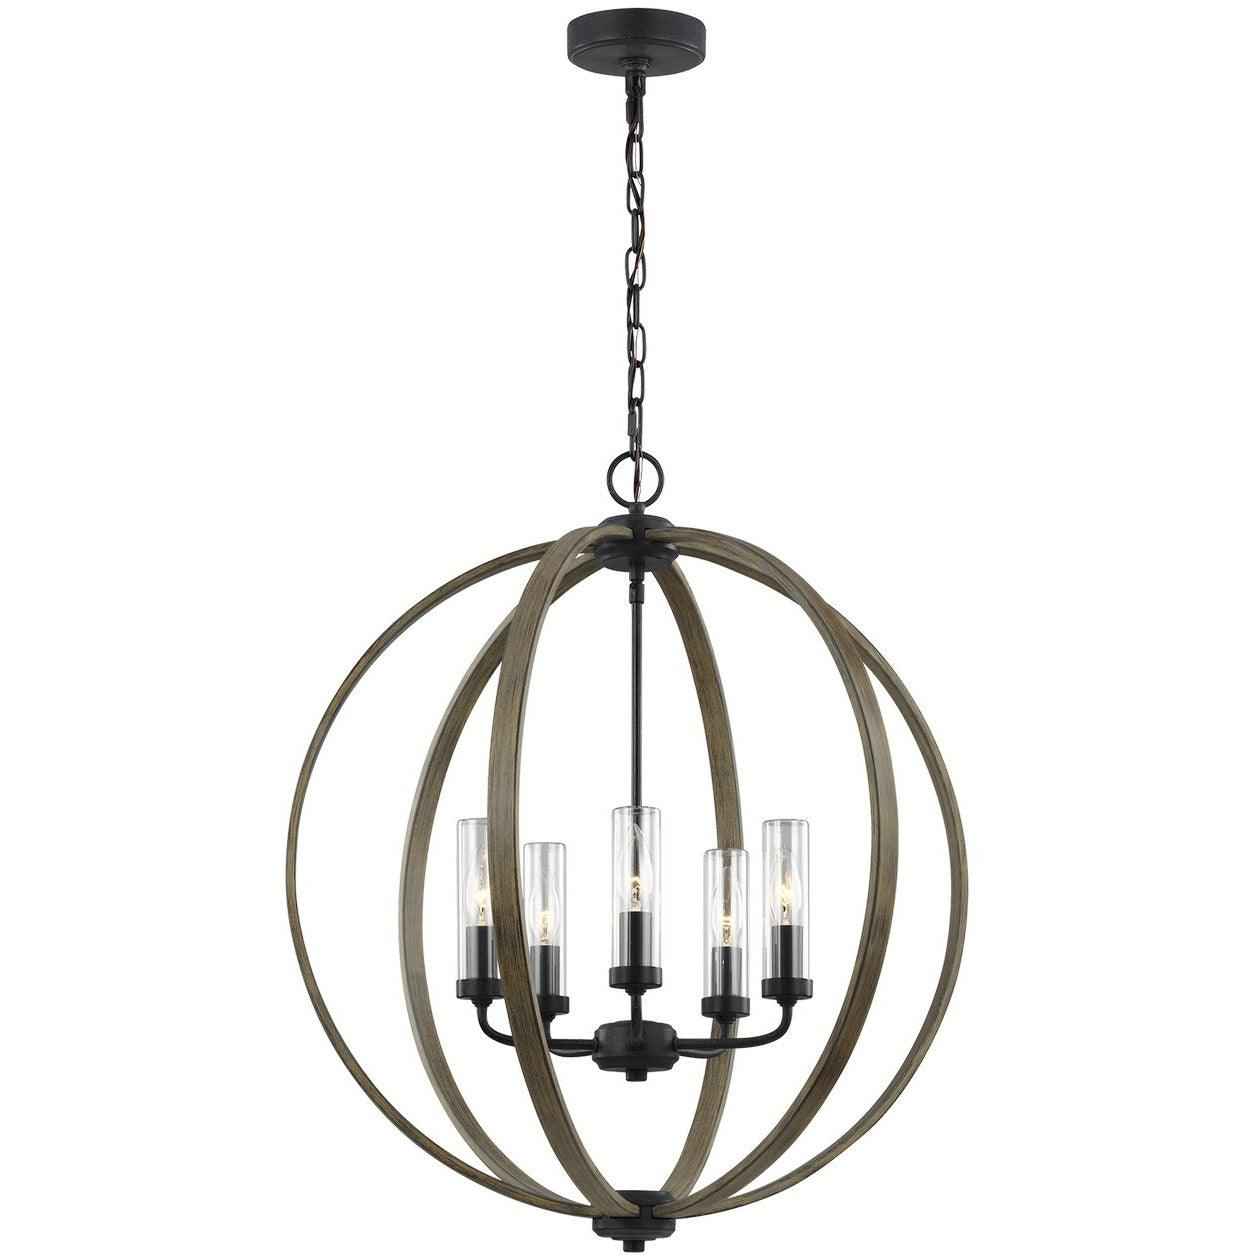 Feiss - OLF3294/5WOW/AF - Generation Lighting - Allier - Weathered Oak Wood / Antique Forged Iron